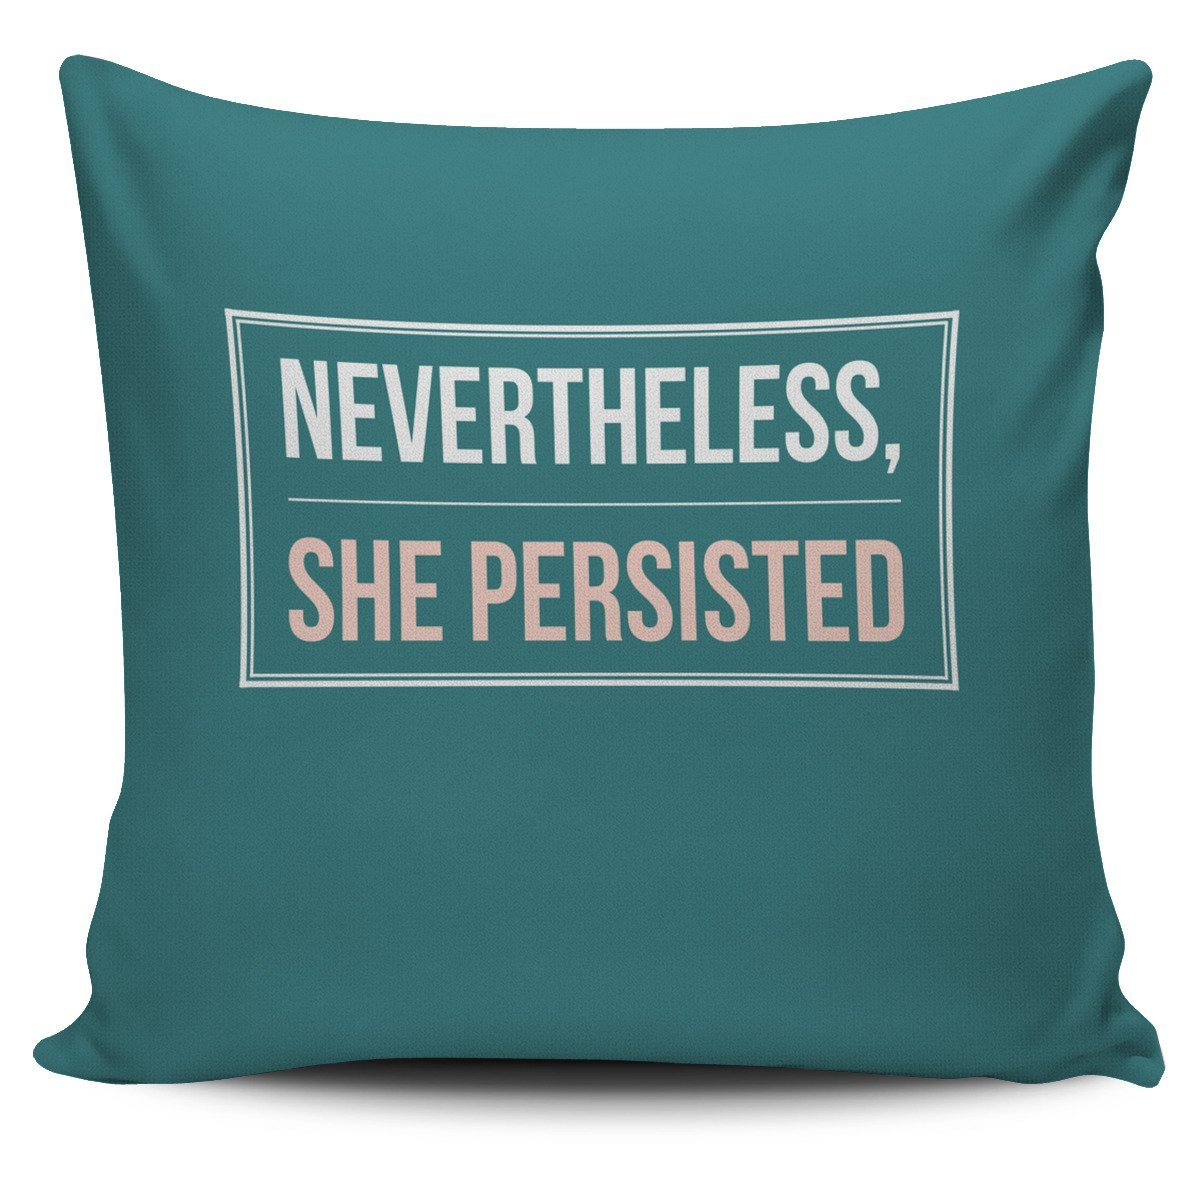 """Nevertheless, she persisted."" Pillow Cover"